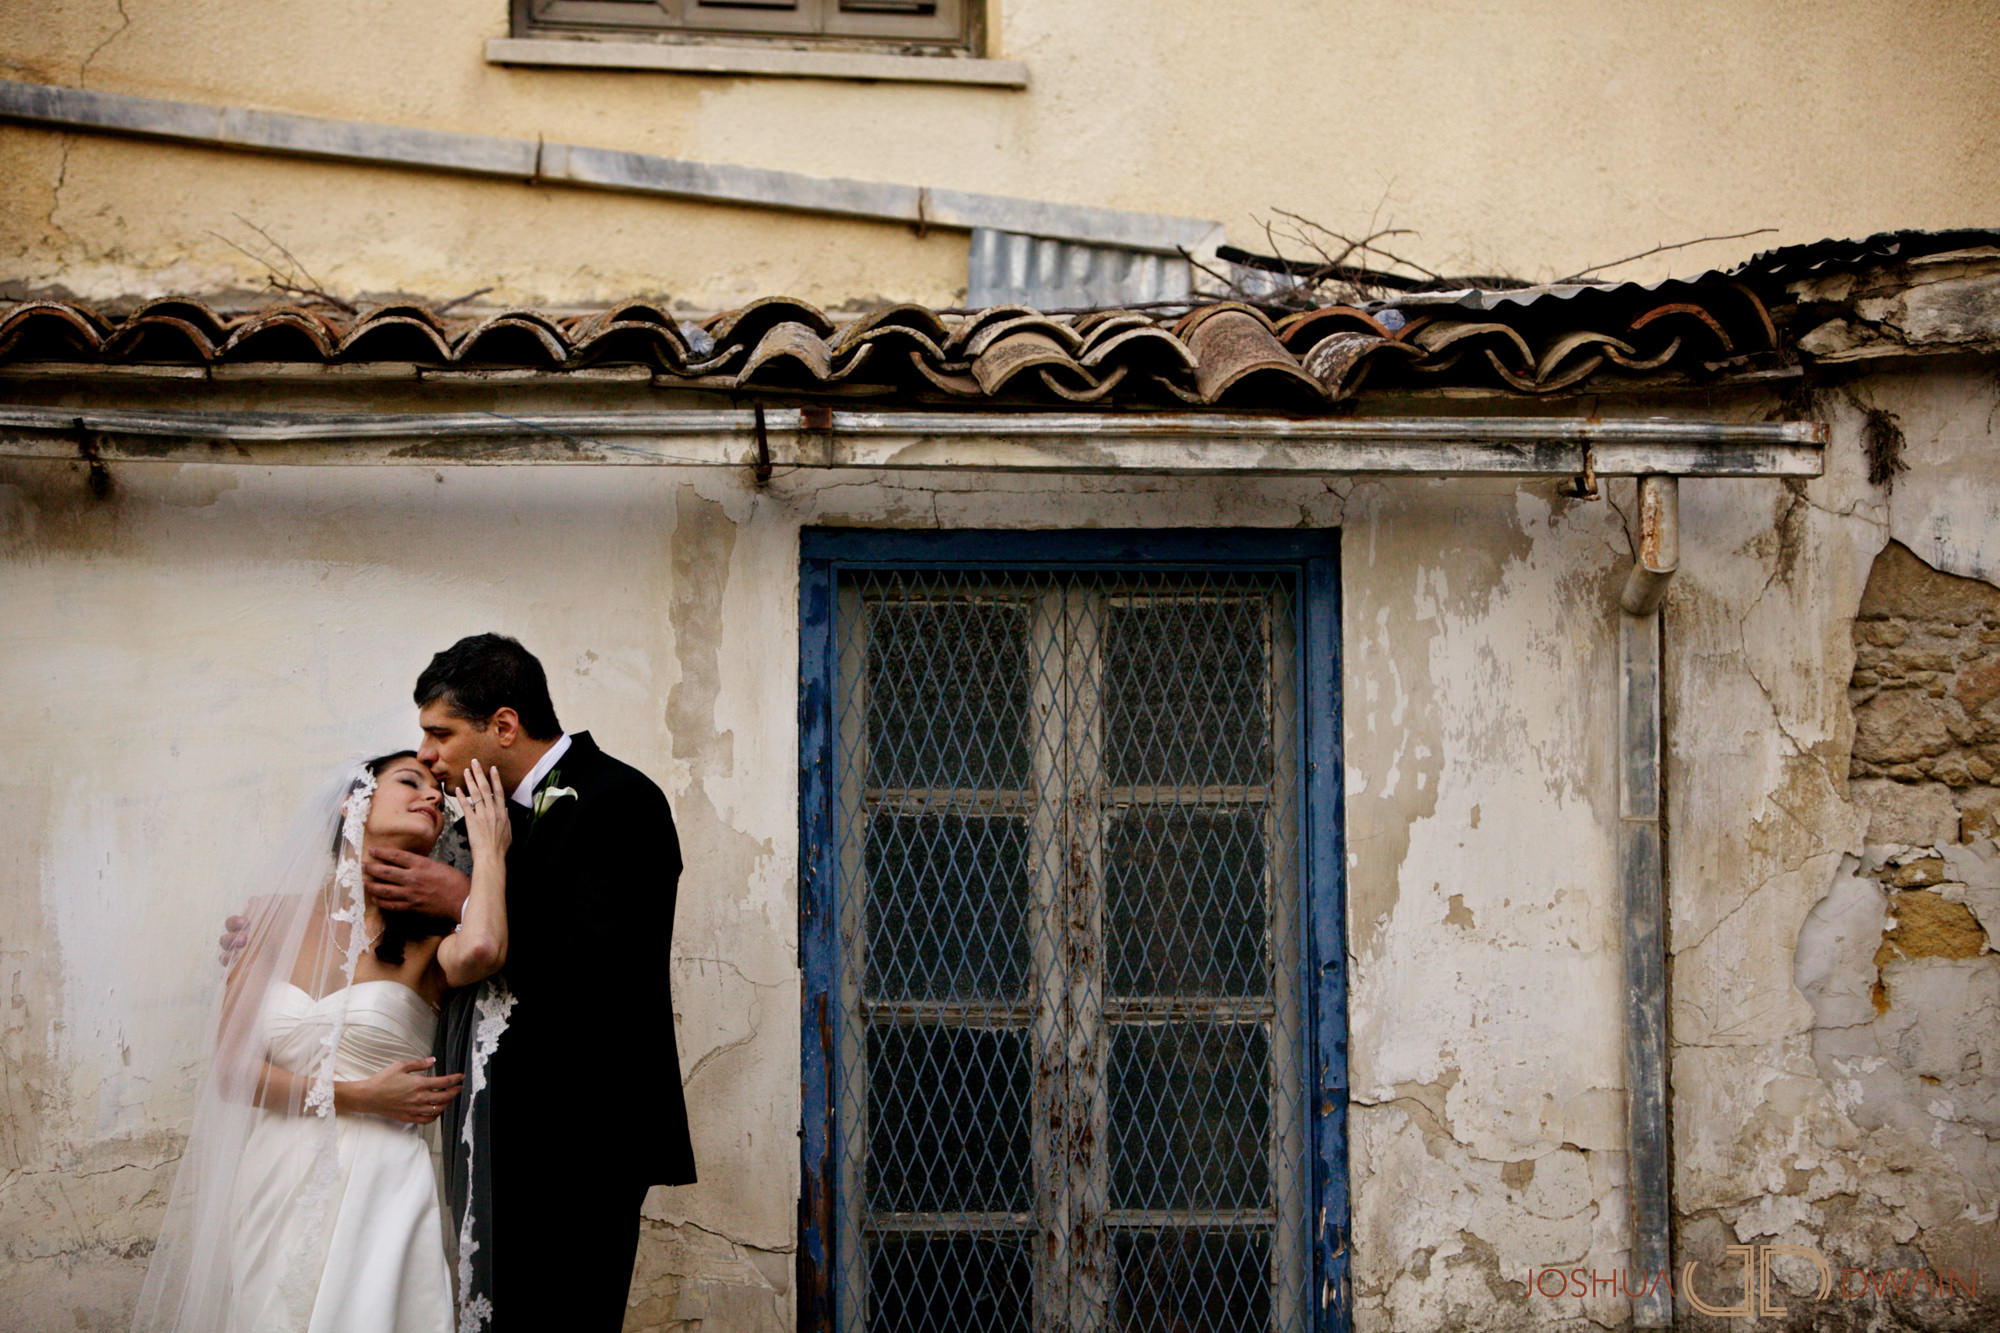 helen-doros-014-famagusta-gate-nicosia-cyprus-wedding-photographer-joshua-dwain-photography-